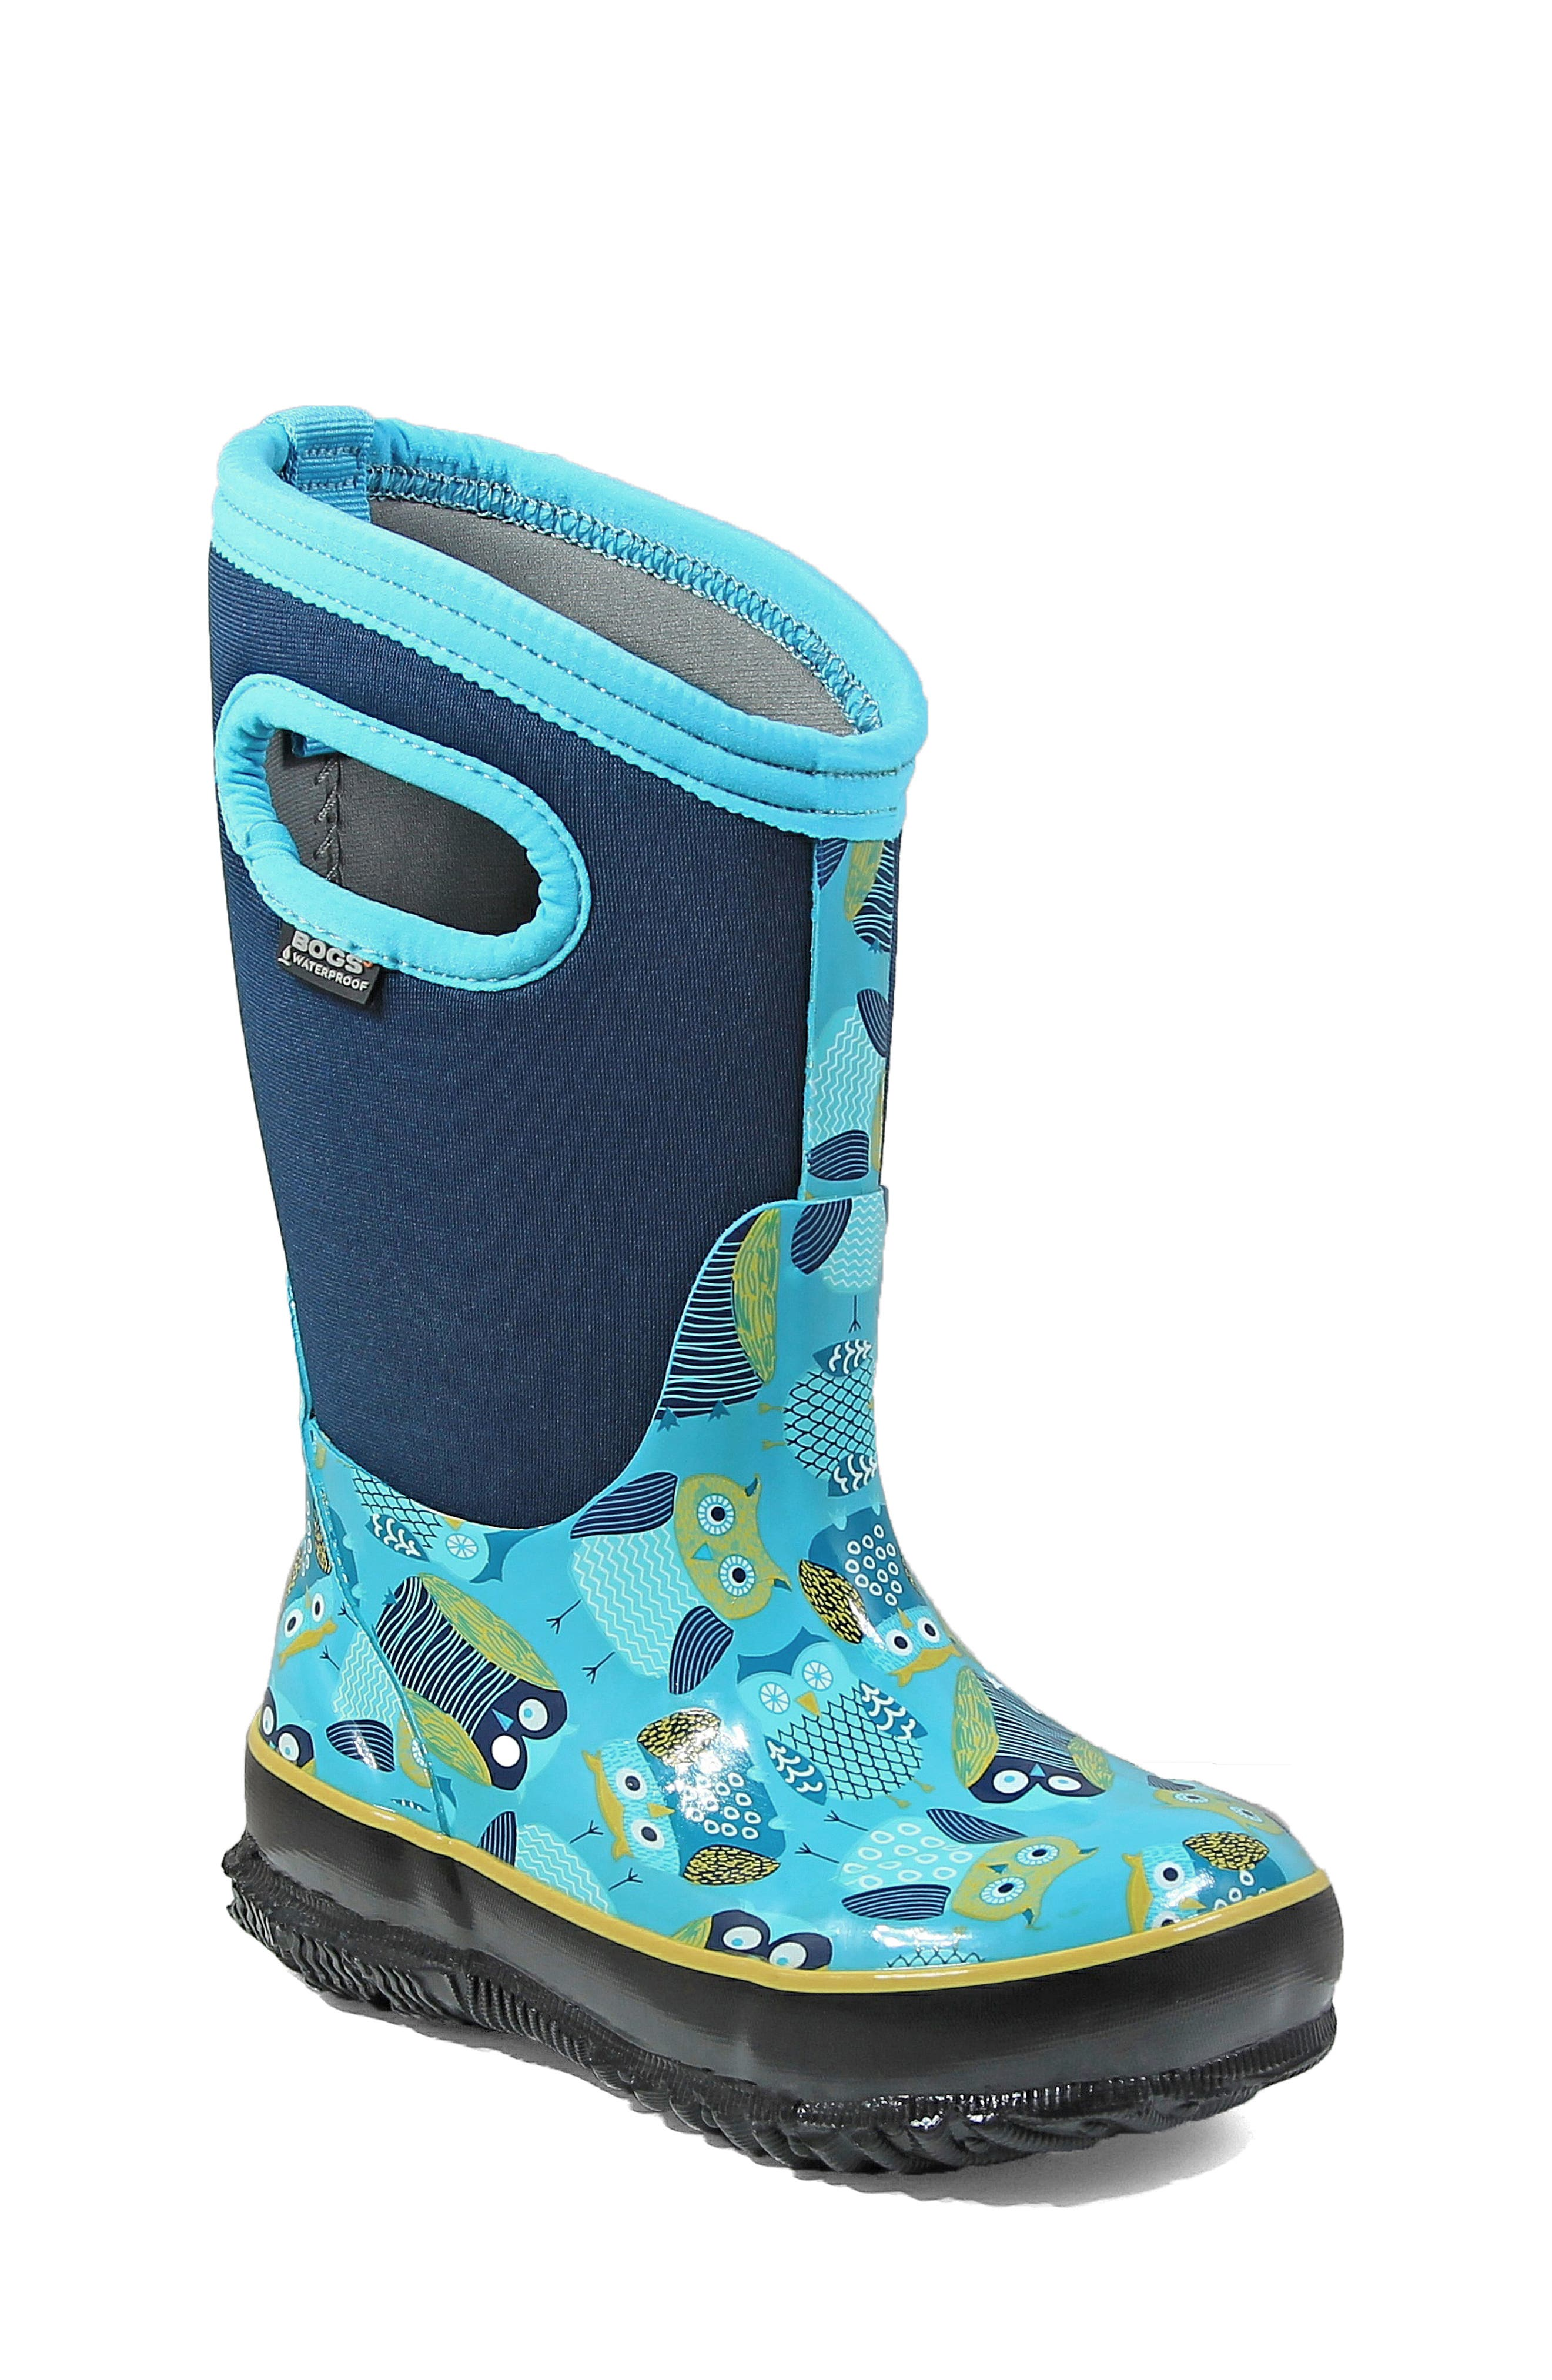 Toddler Girls Bogs Classic Insulated Waterproof Owl Boot Size 11 M  Blue